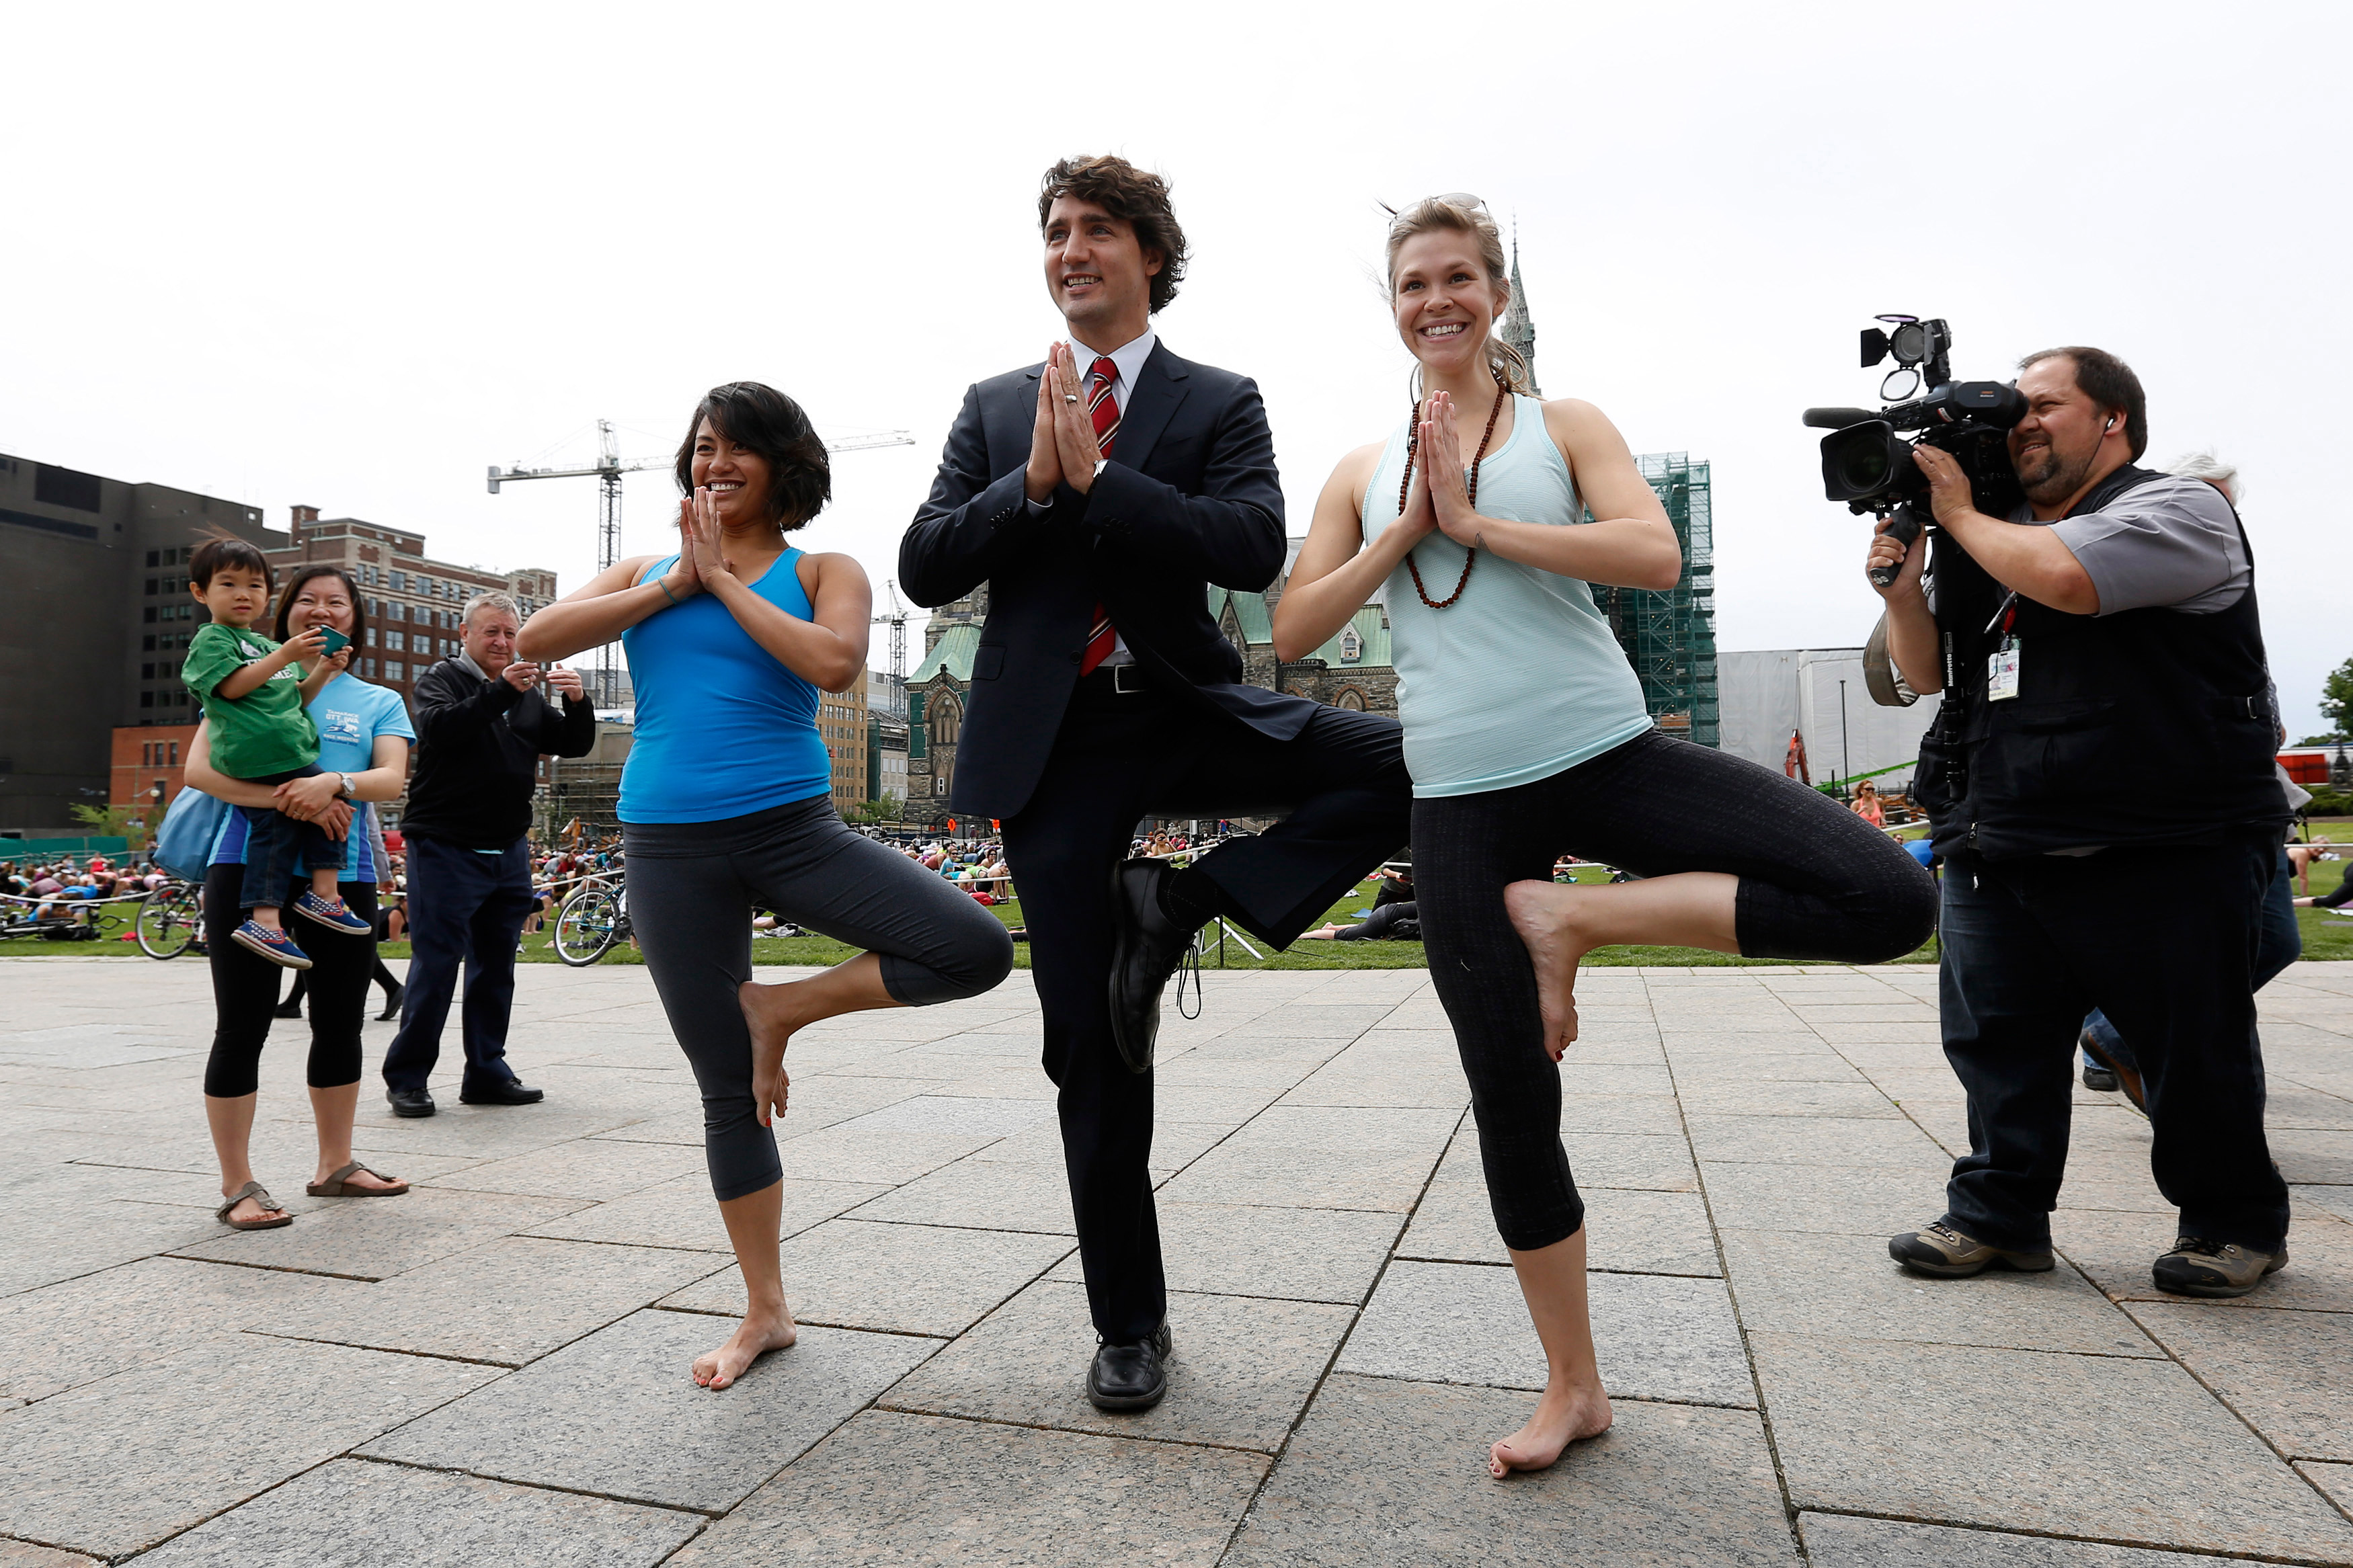 Justin Trudeau Does Yoga Pose In Photo From 2013 Time